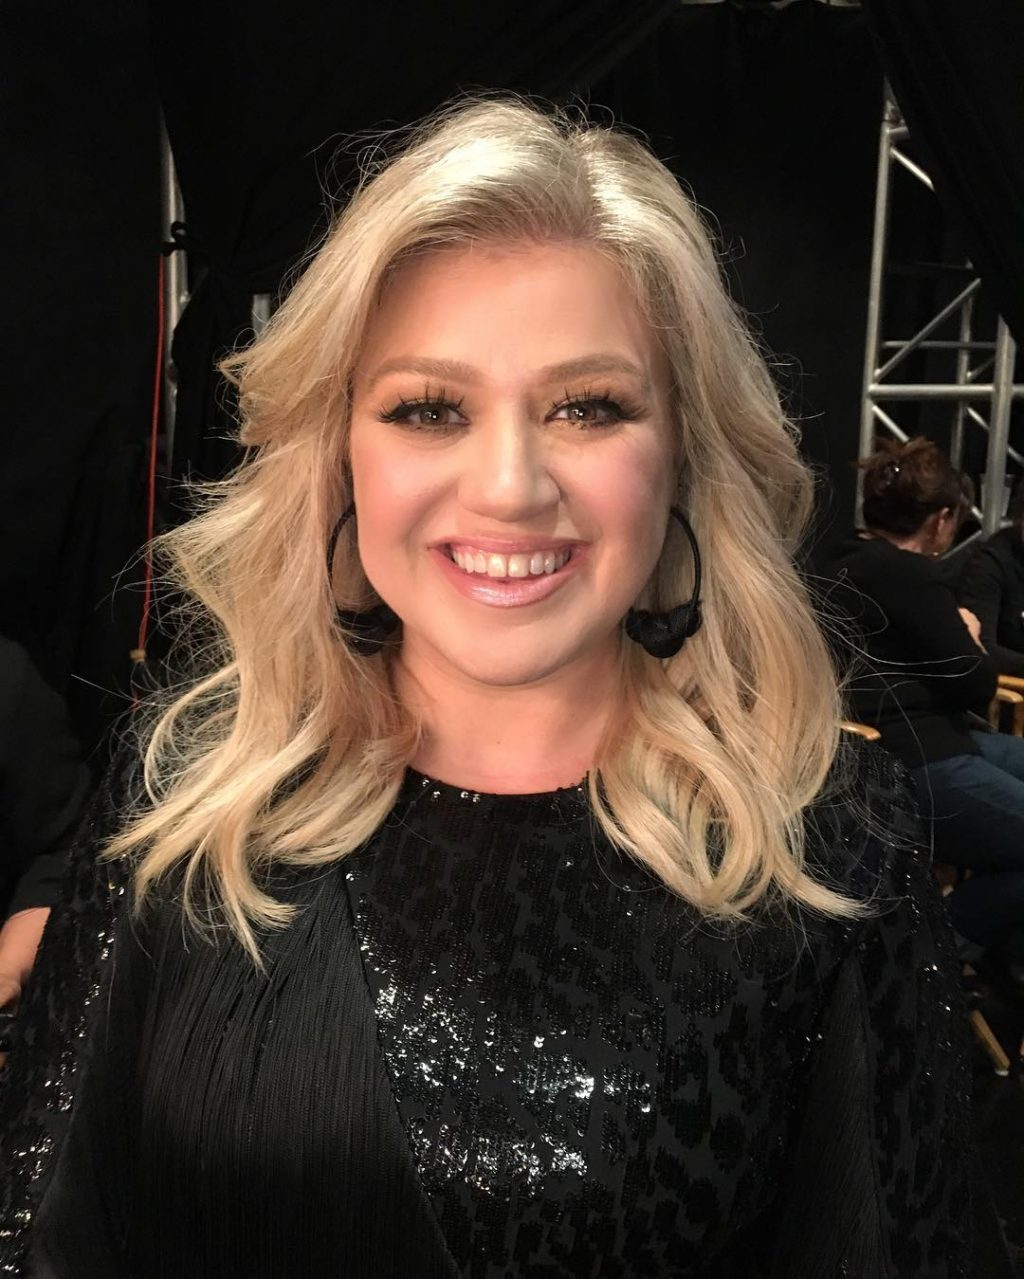 Kelly Clarkson's Makeup Routine from The Voice